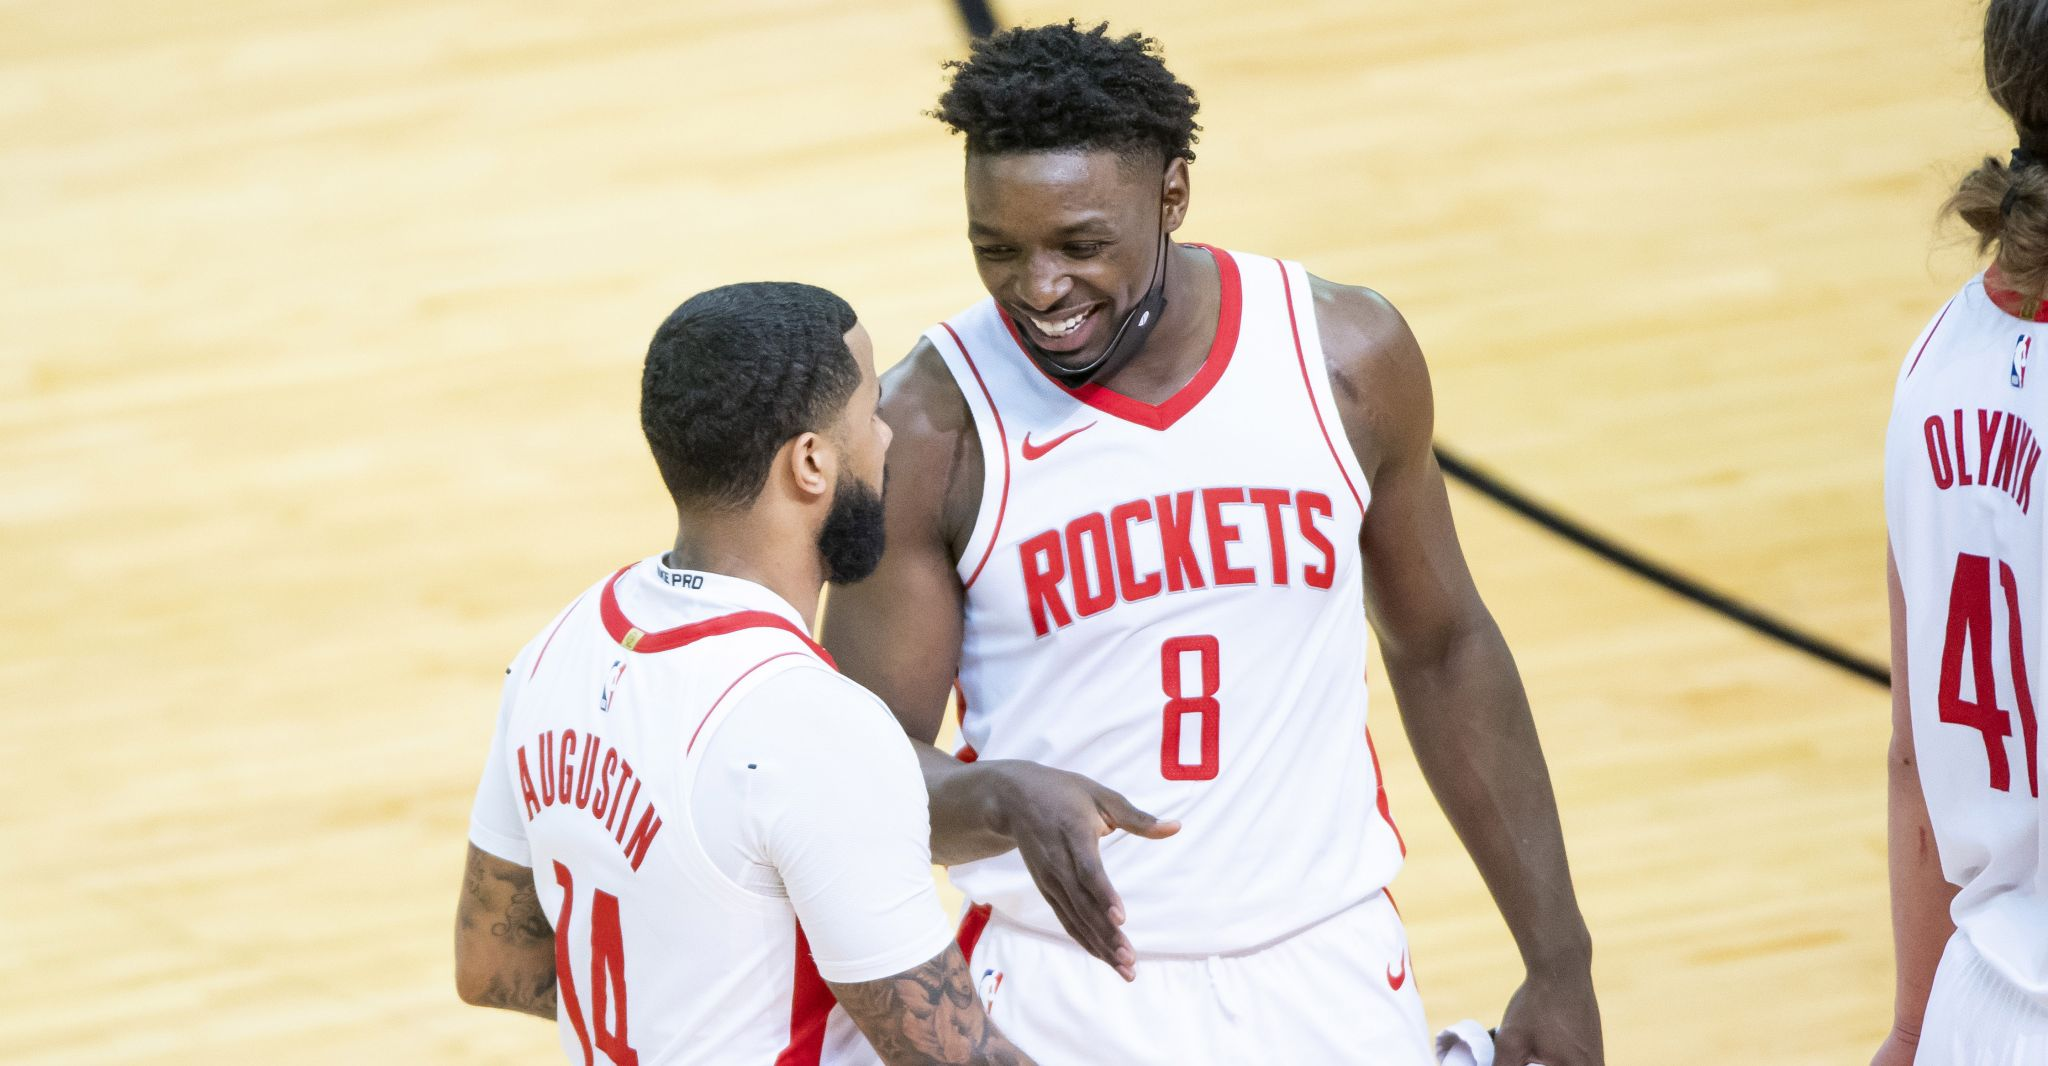 Rockets hold off Clippers to win final home game of season